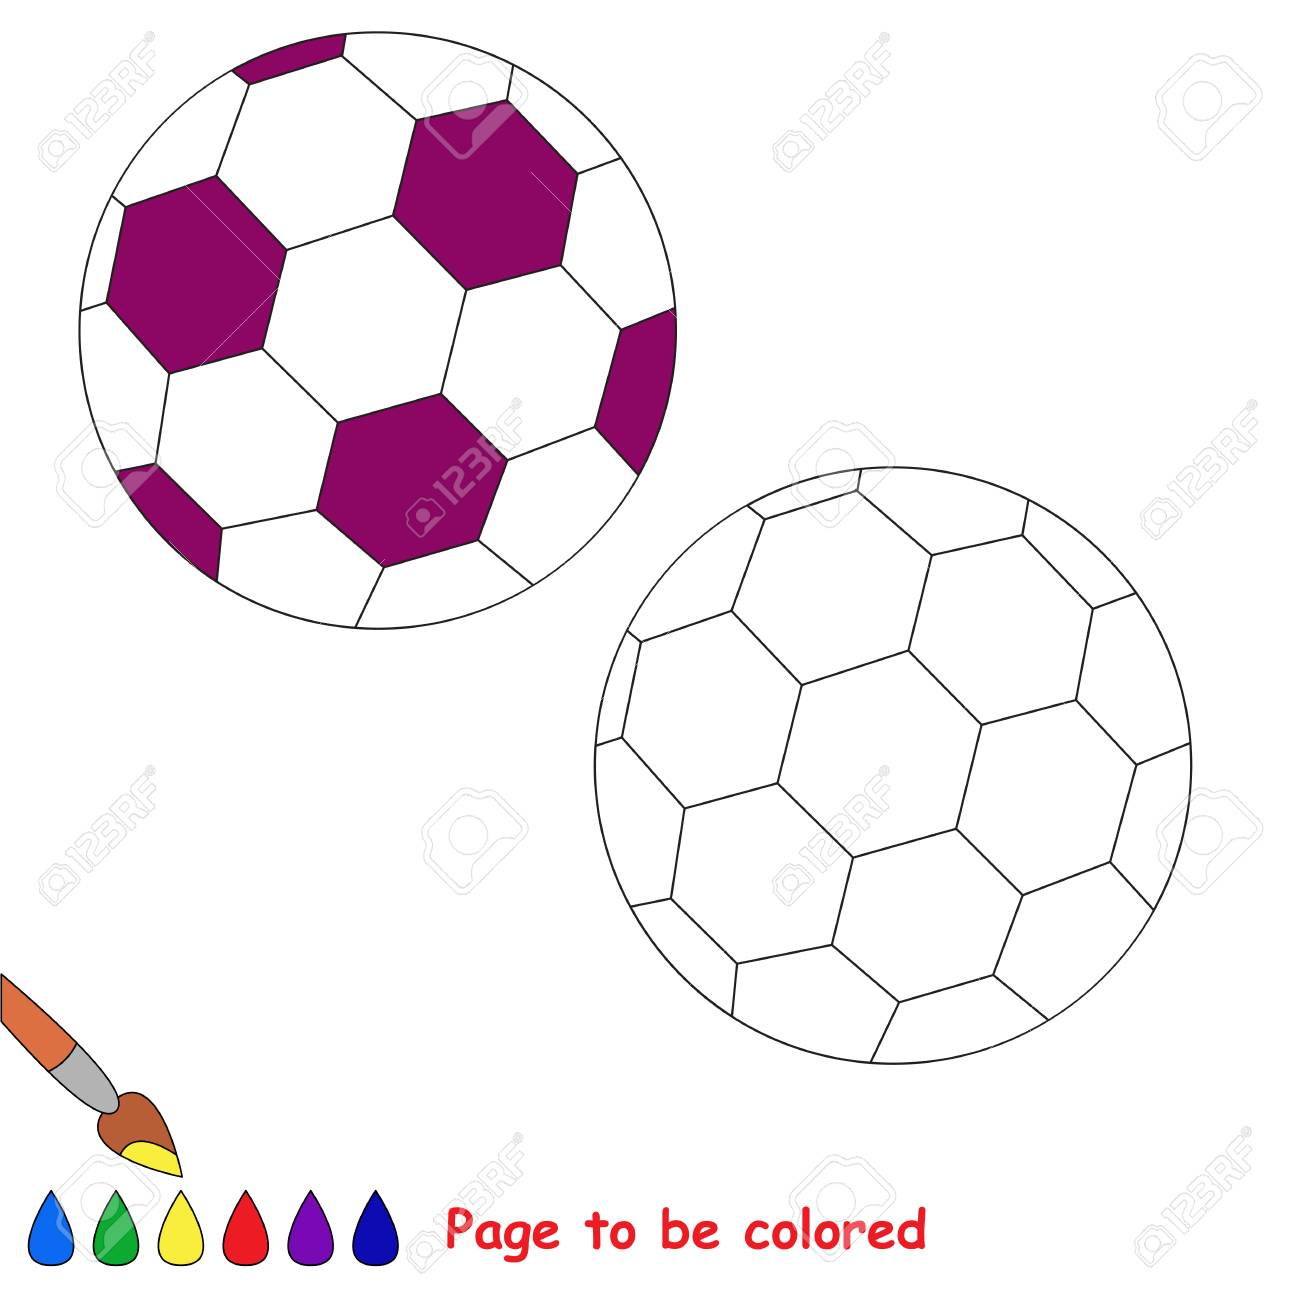 - Football Ball To Be Colored, The Coloring Book For Preschool